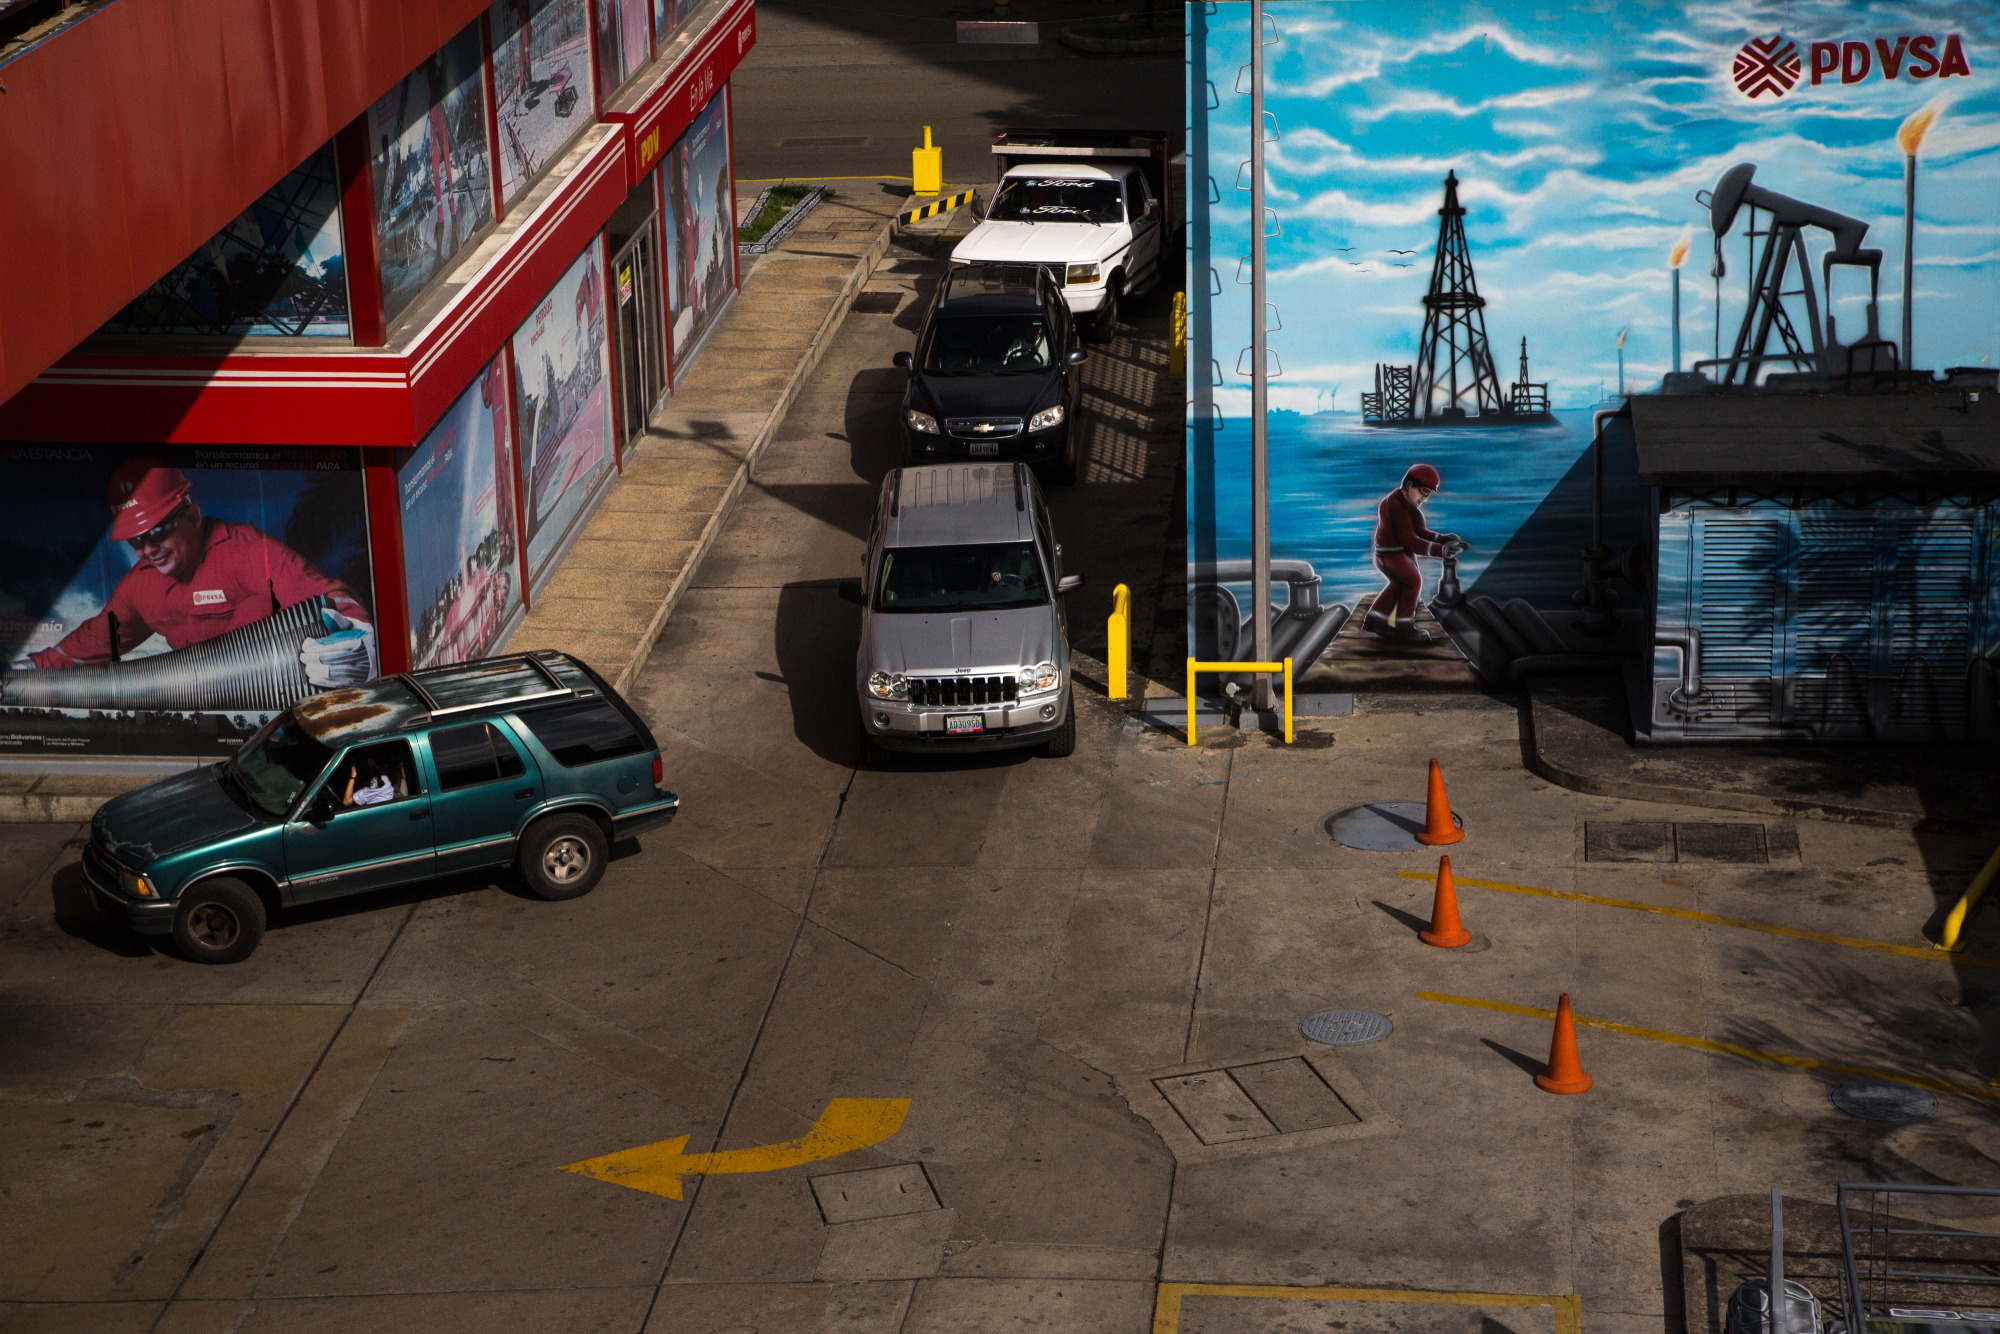 Vehicles wait in line for fuel at a Petroleos de Venezuela SA (PDVSA) gas station in Caracas. Photographer: Wil Riera/Bloomberg